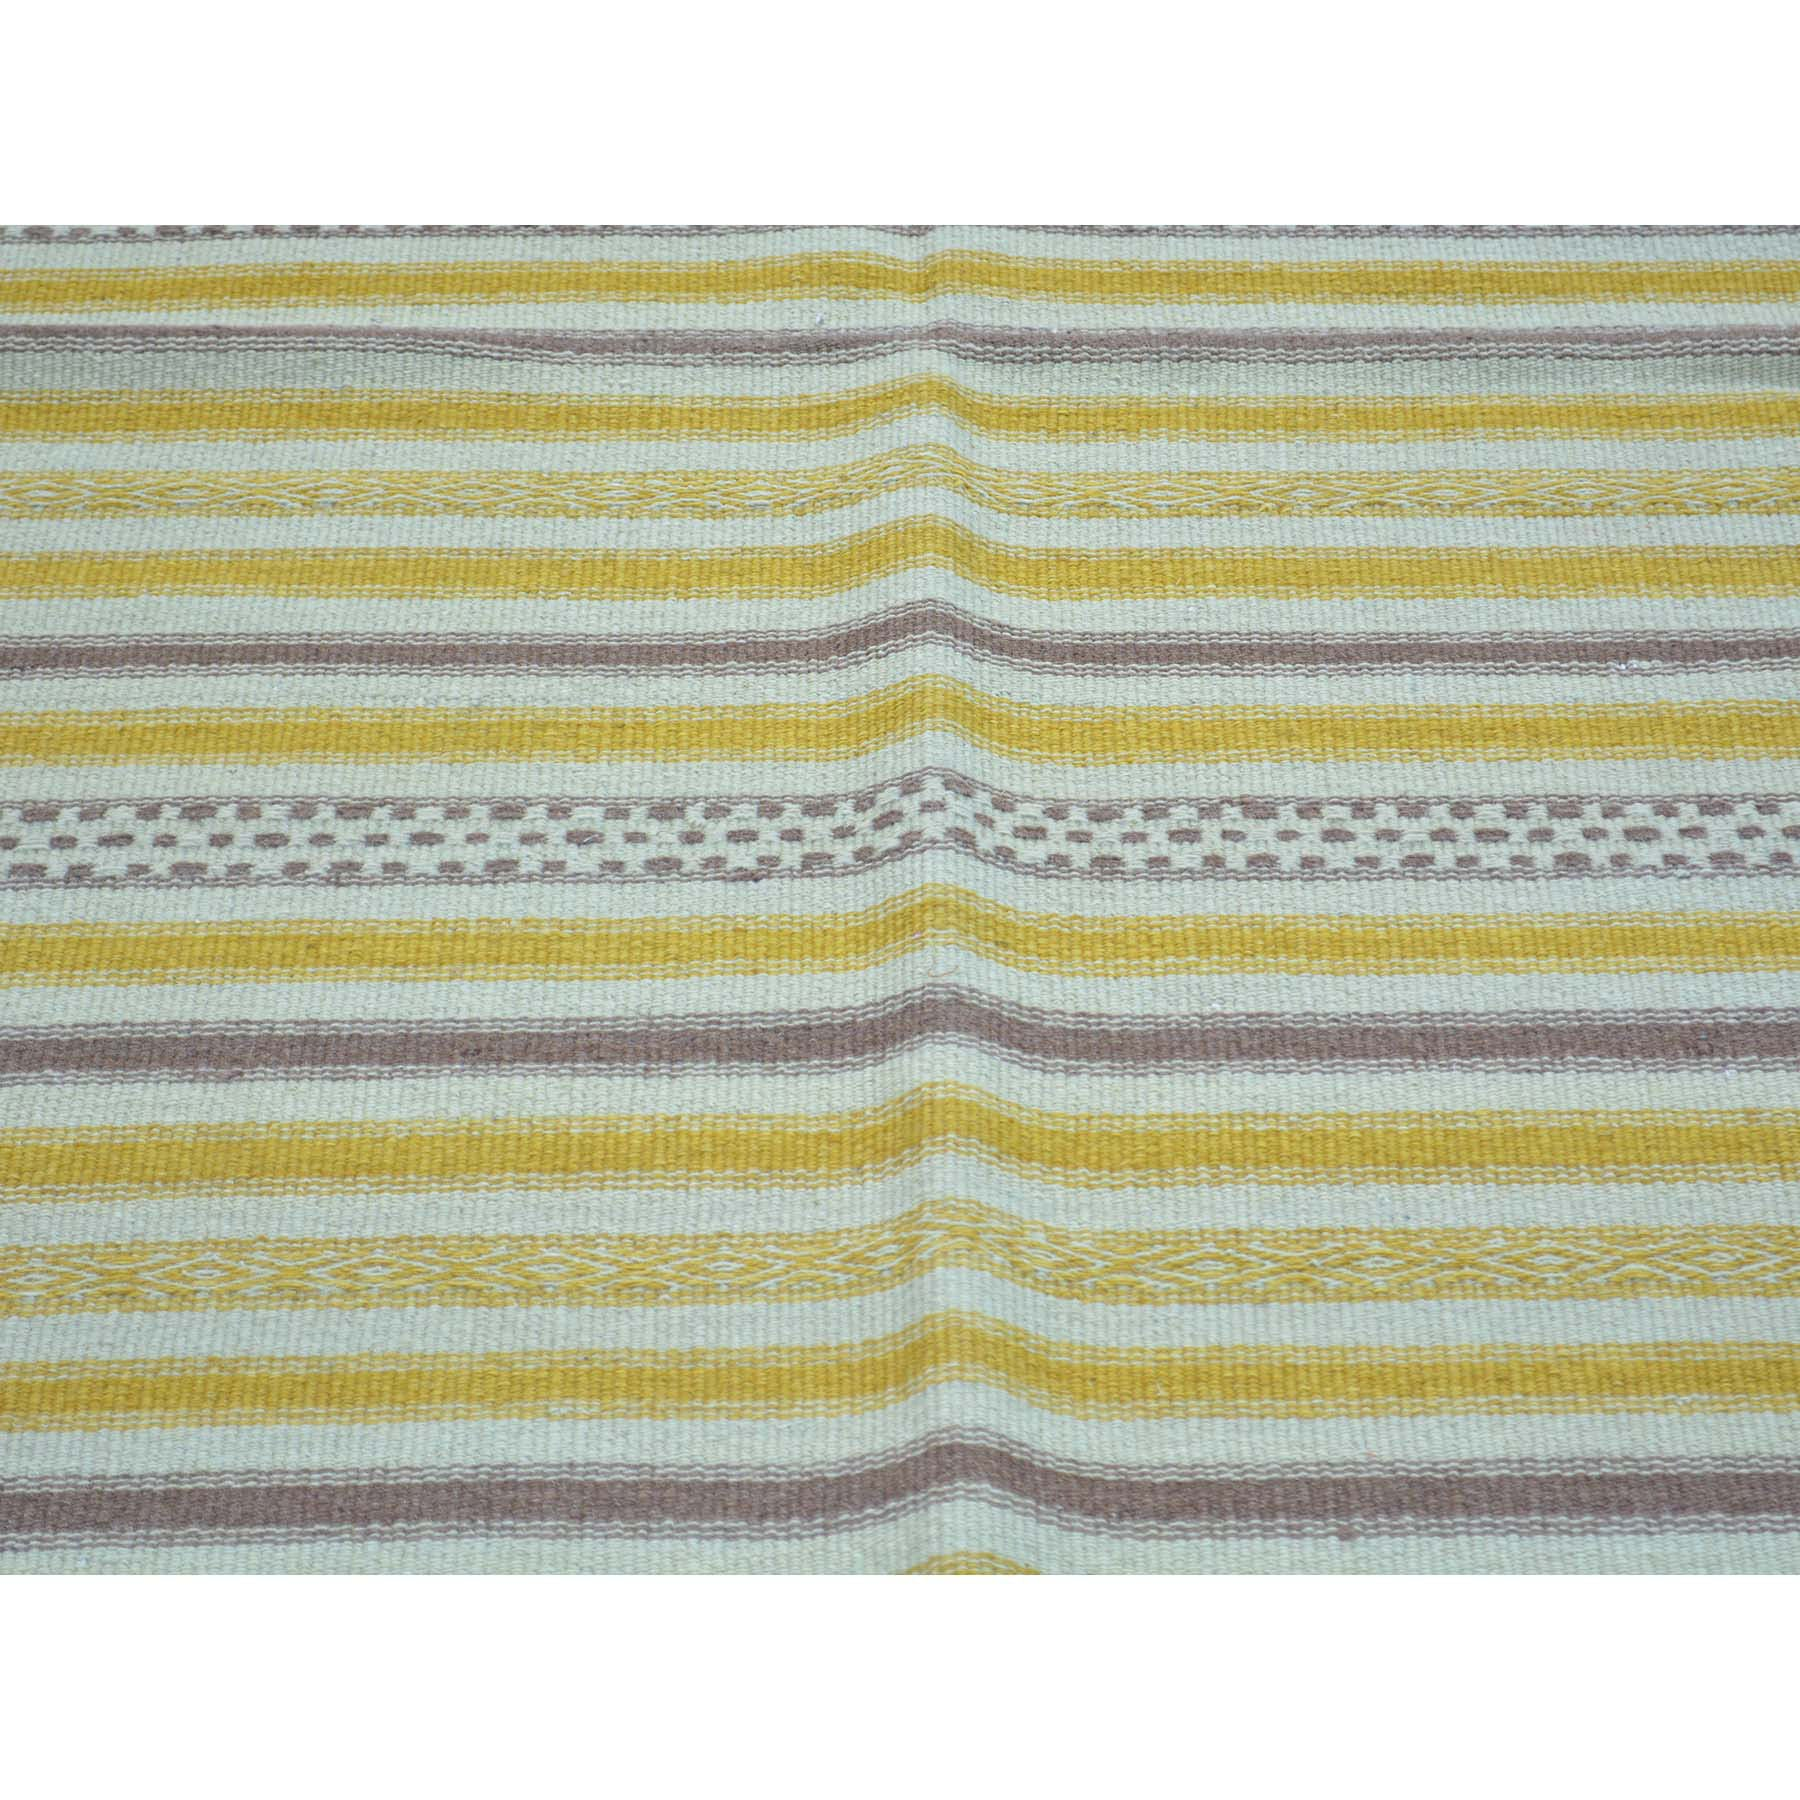 "Handmade Flat Weave Rectangle Rug > Design# SH30054 > Size: 3'-10"" x 6'-1"" [ONLINE ONLY]"